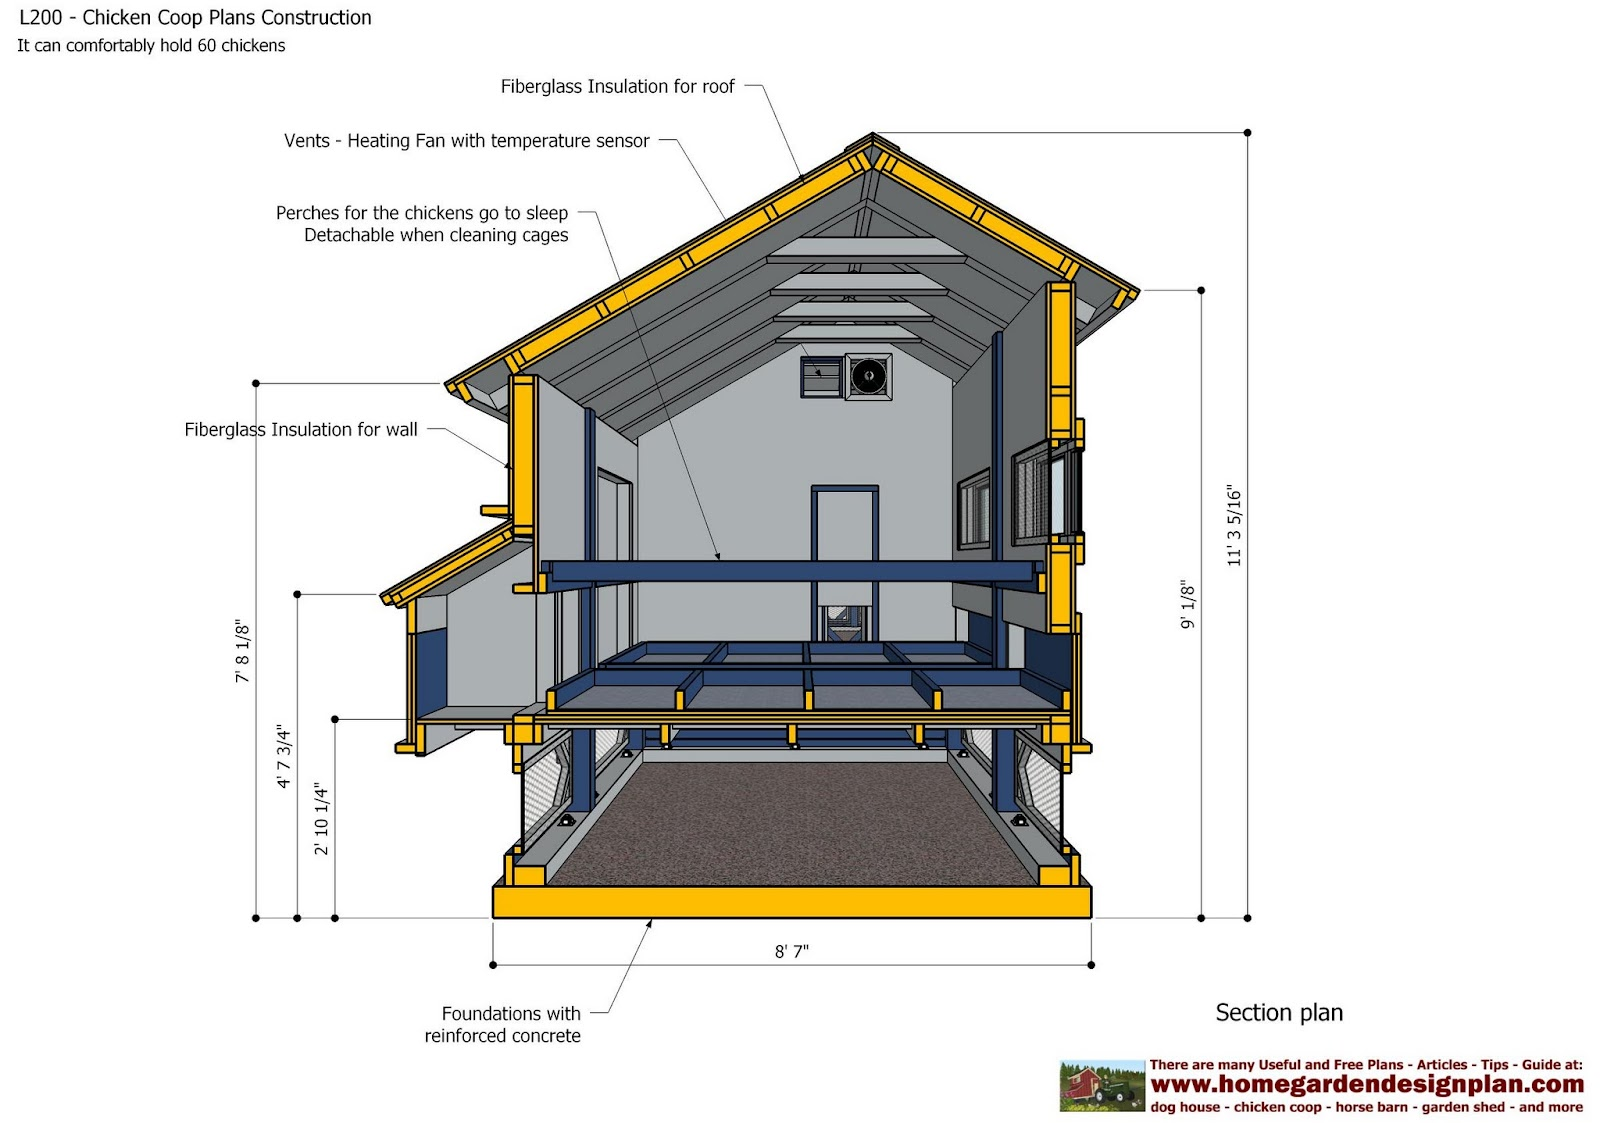 ... Chicken Coop Plans Construction - Chicken Coop Design - How To Build A